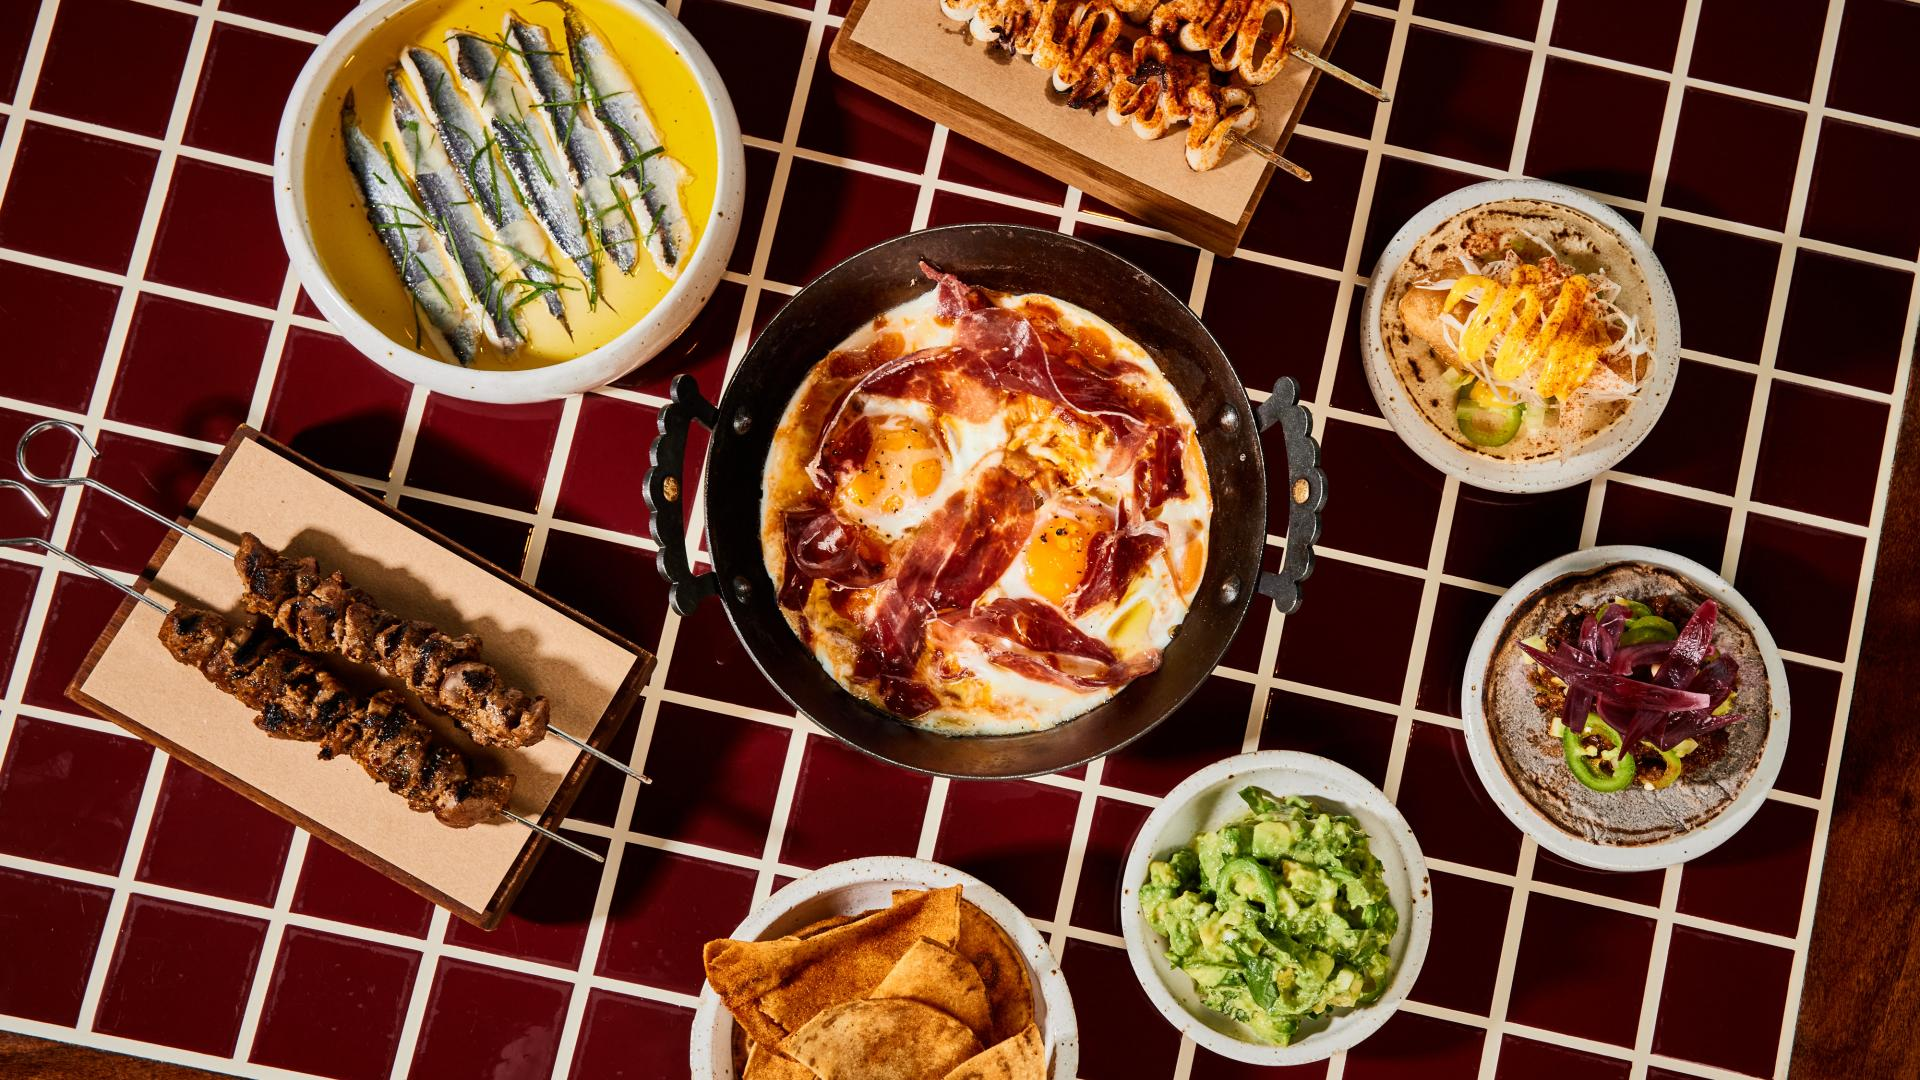 This is an image of the newly-launched Brunch at Decimo